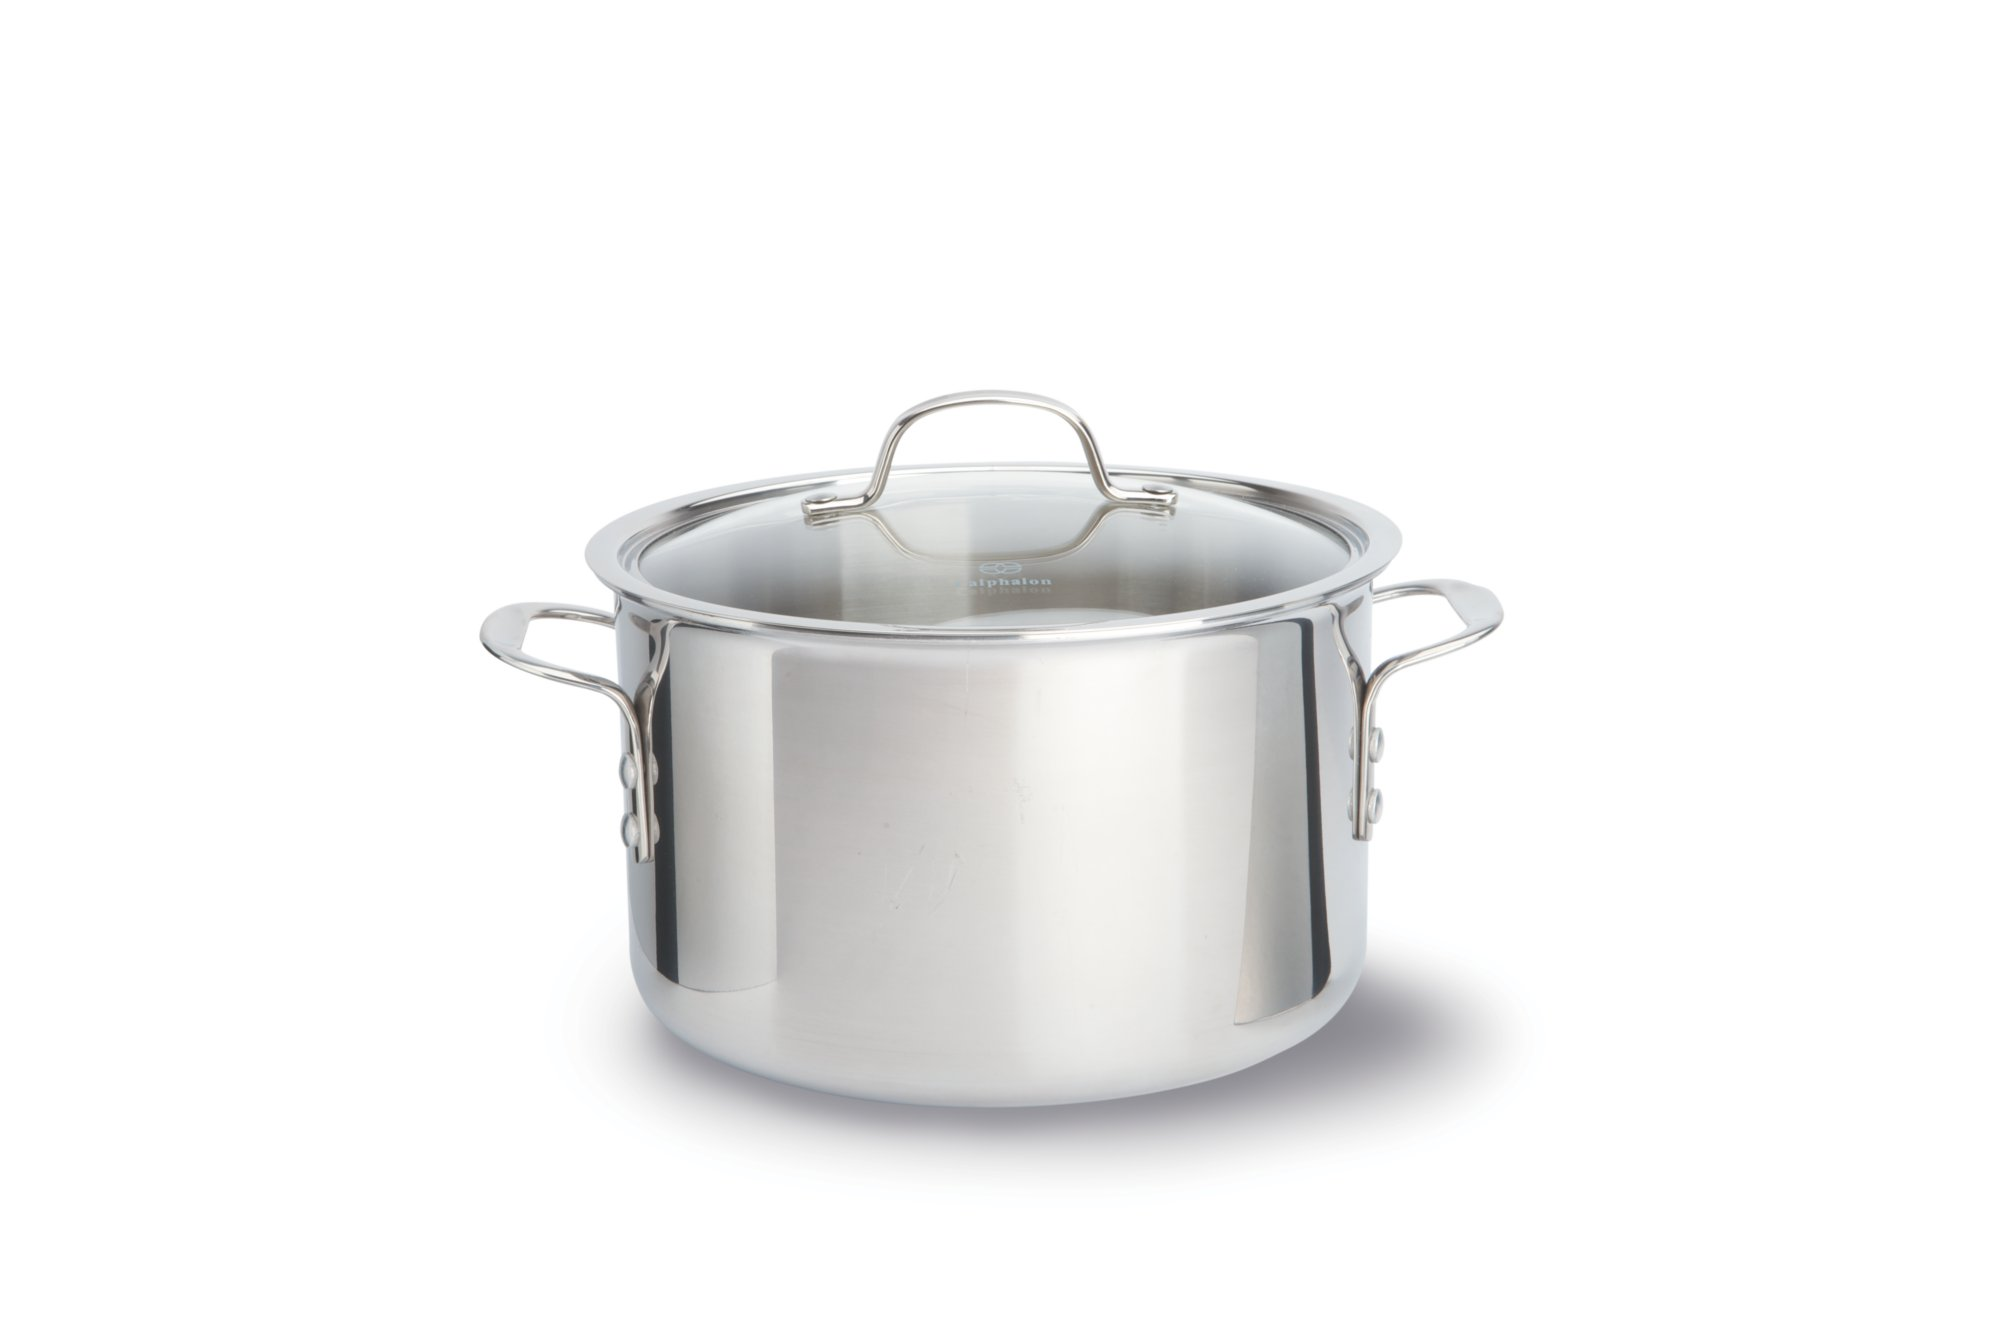 Calphalon Tri-Ply Stainless Steel 8-qt. Stock Pot with Cover